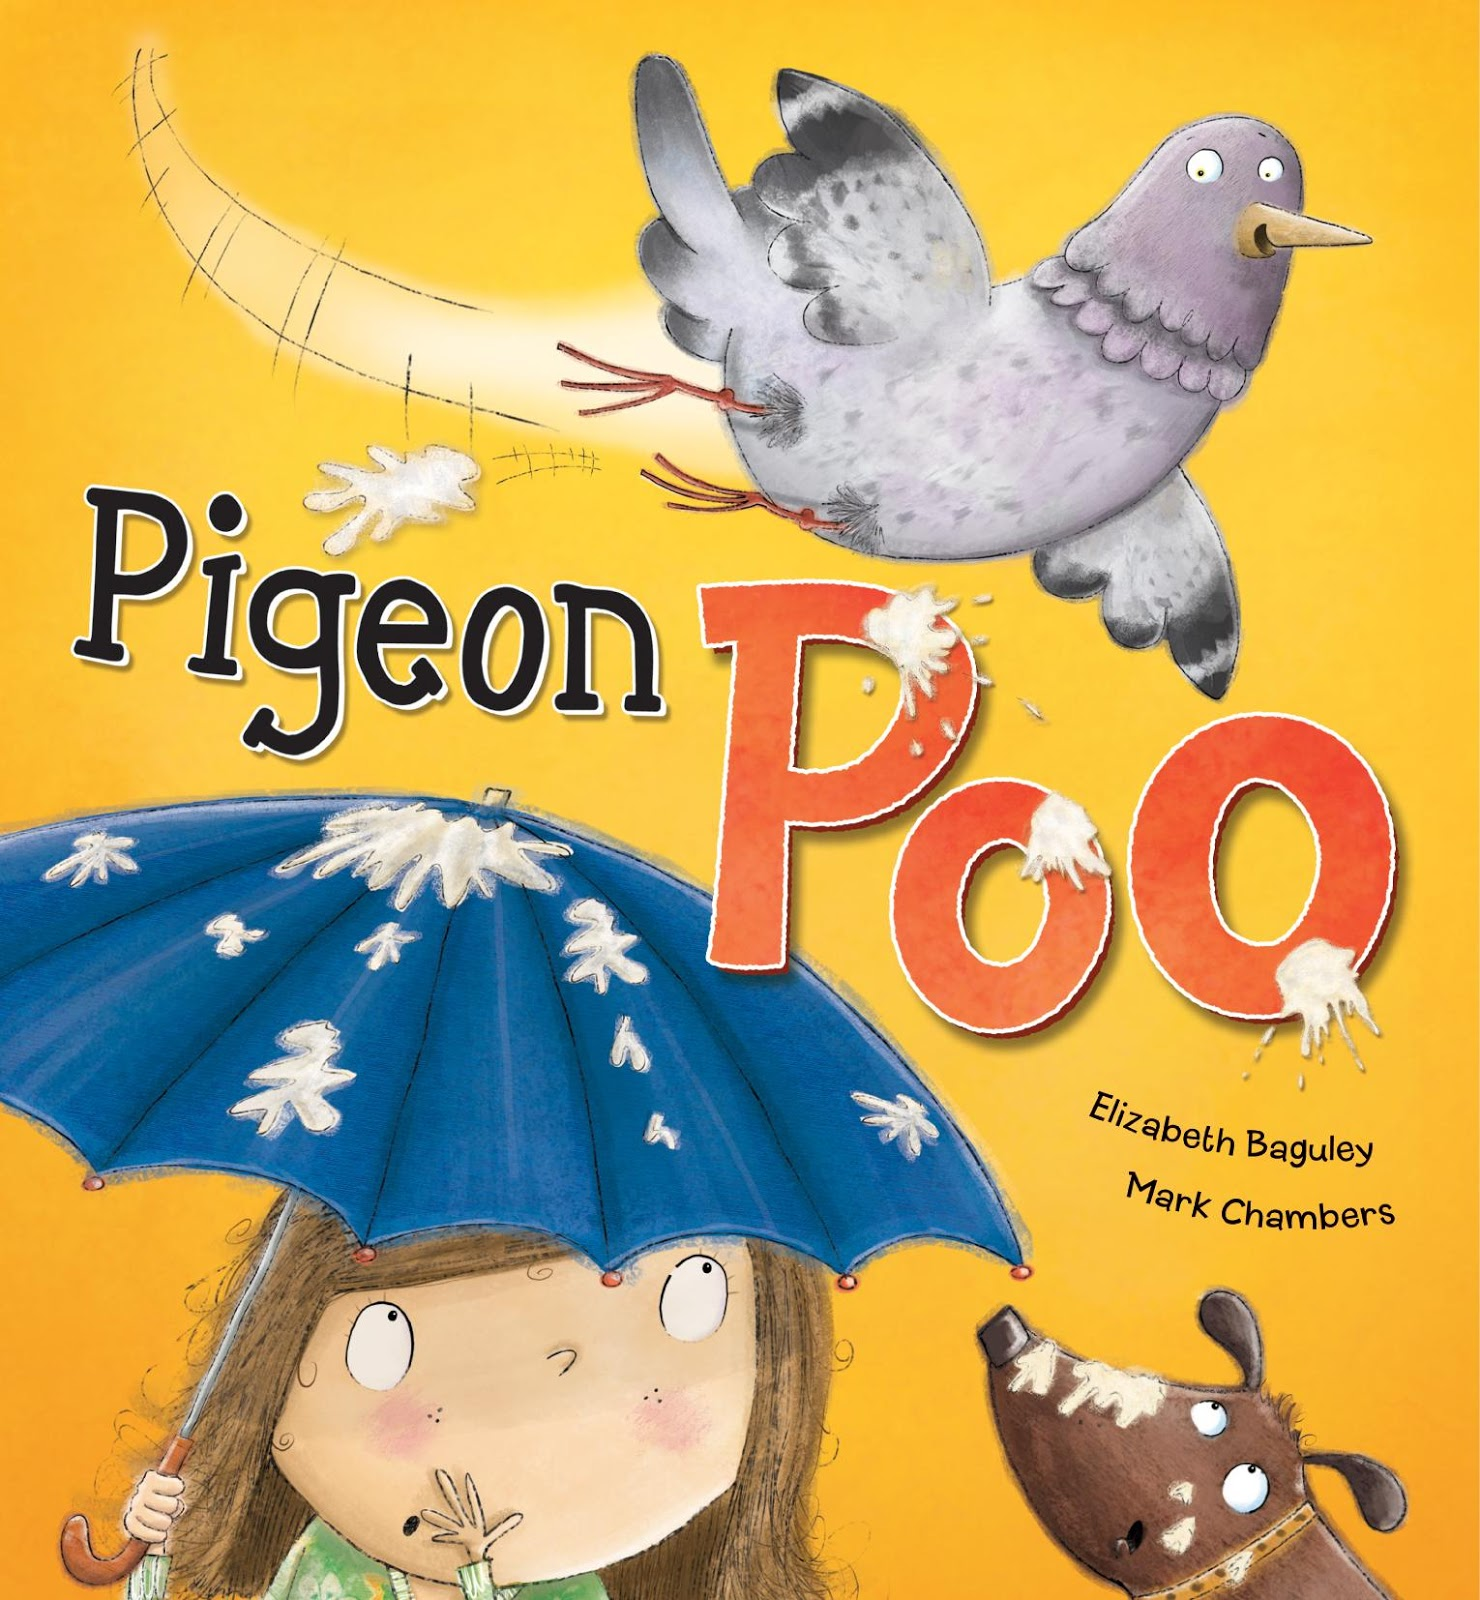 Sheffield childrens book award winners archive picture books 2013 winner pigeon poo voltagebd Gallery